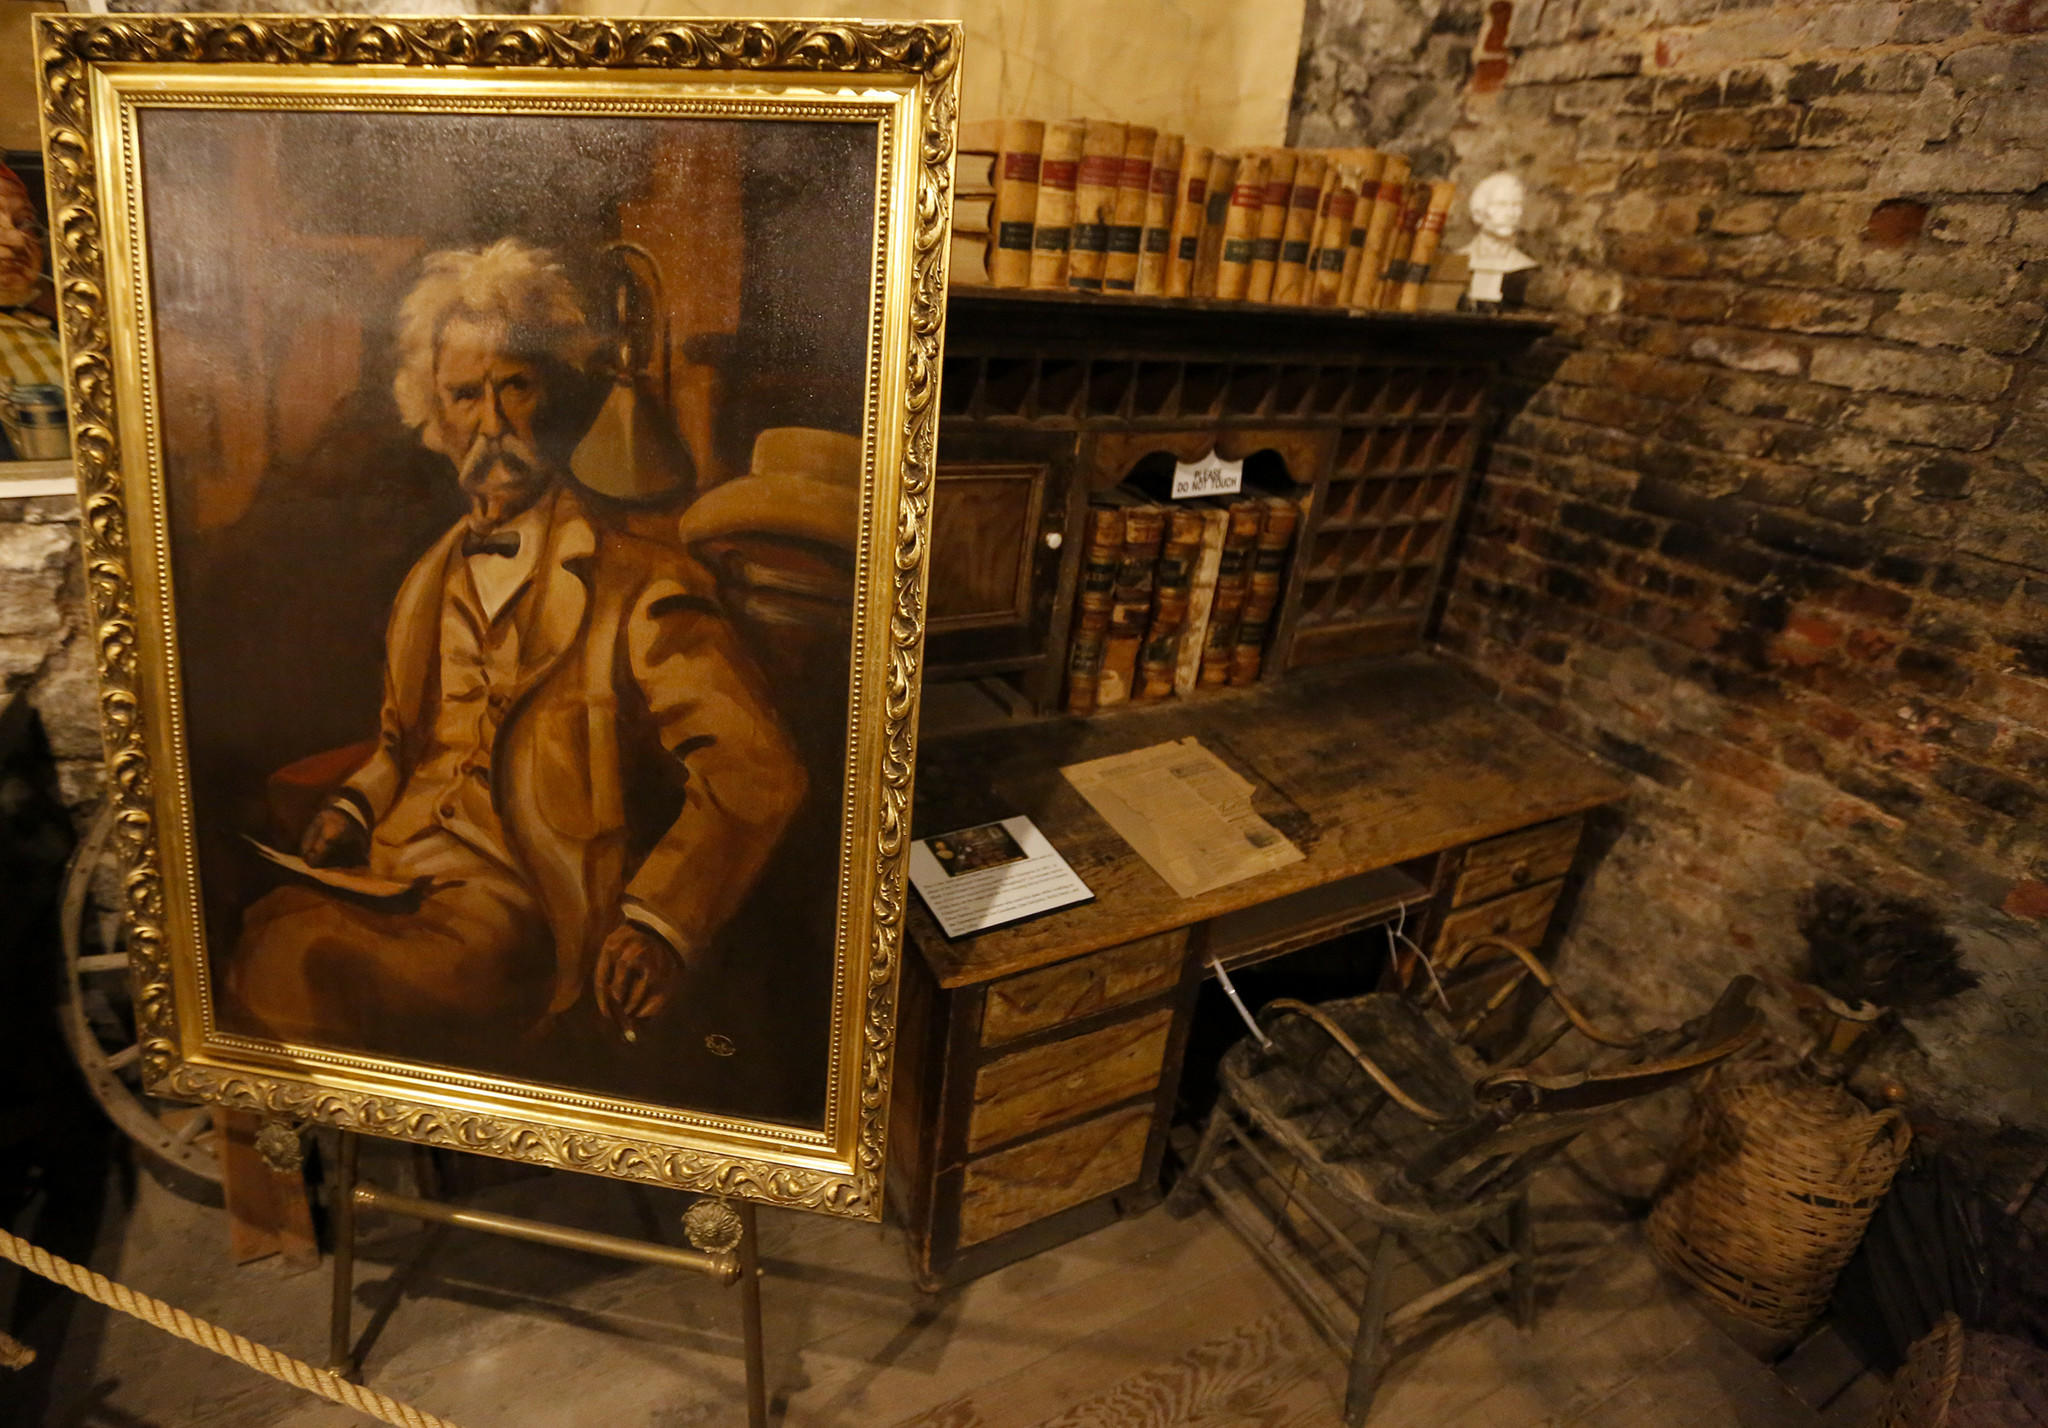 The Mark Twain Museum and Territorial Enterprise Office is in the basement of a store on C street in Virginia City. The desk possibly used by Twain is in the corner of the museum, with a portrait of the author on an easel.